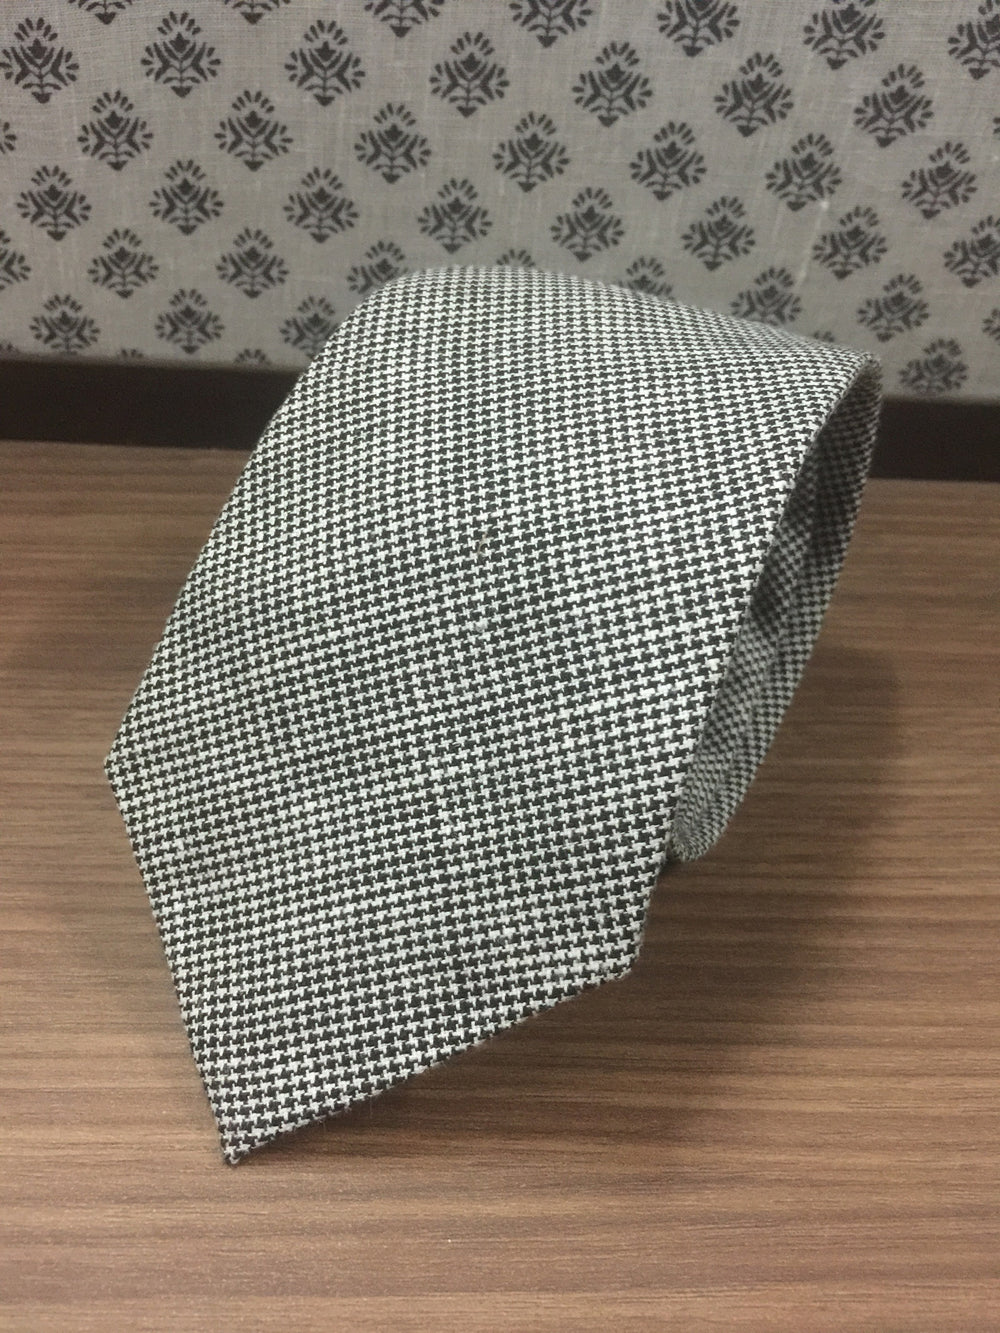 Linen Tie: Black White Houndstooth (452532920)